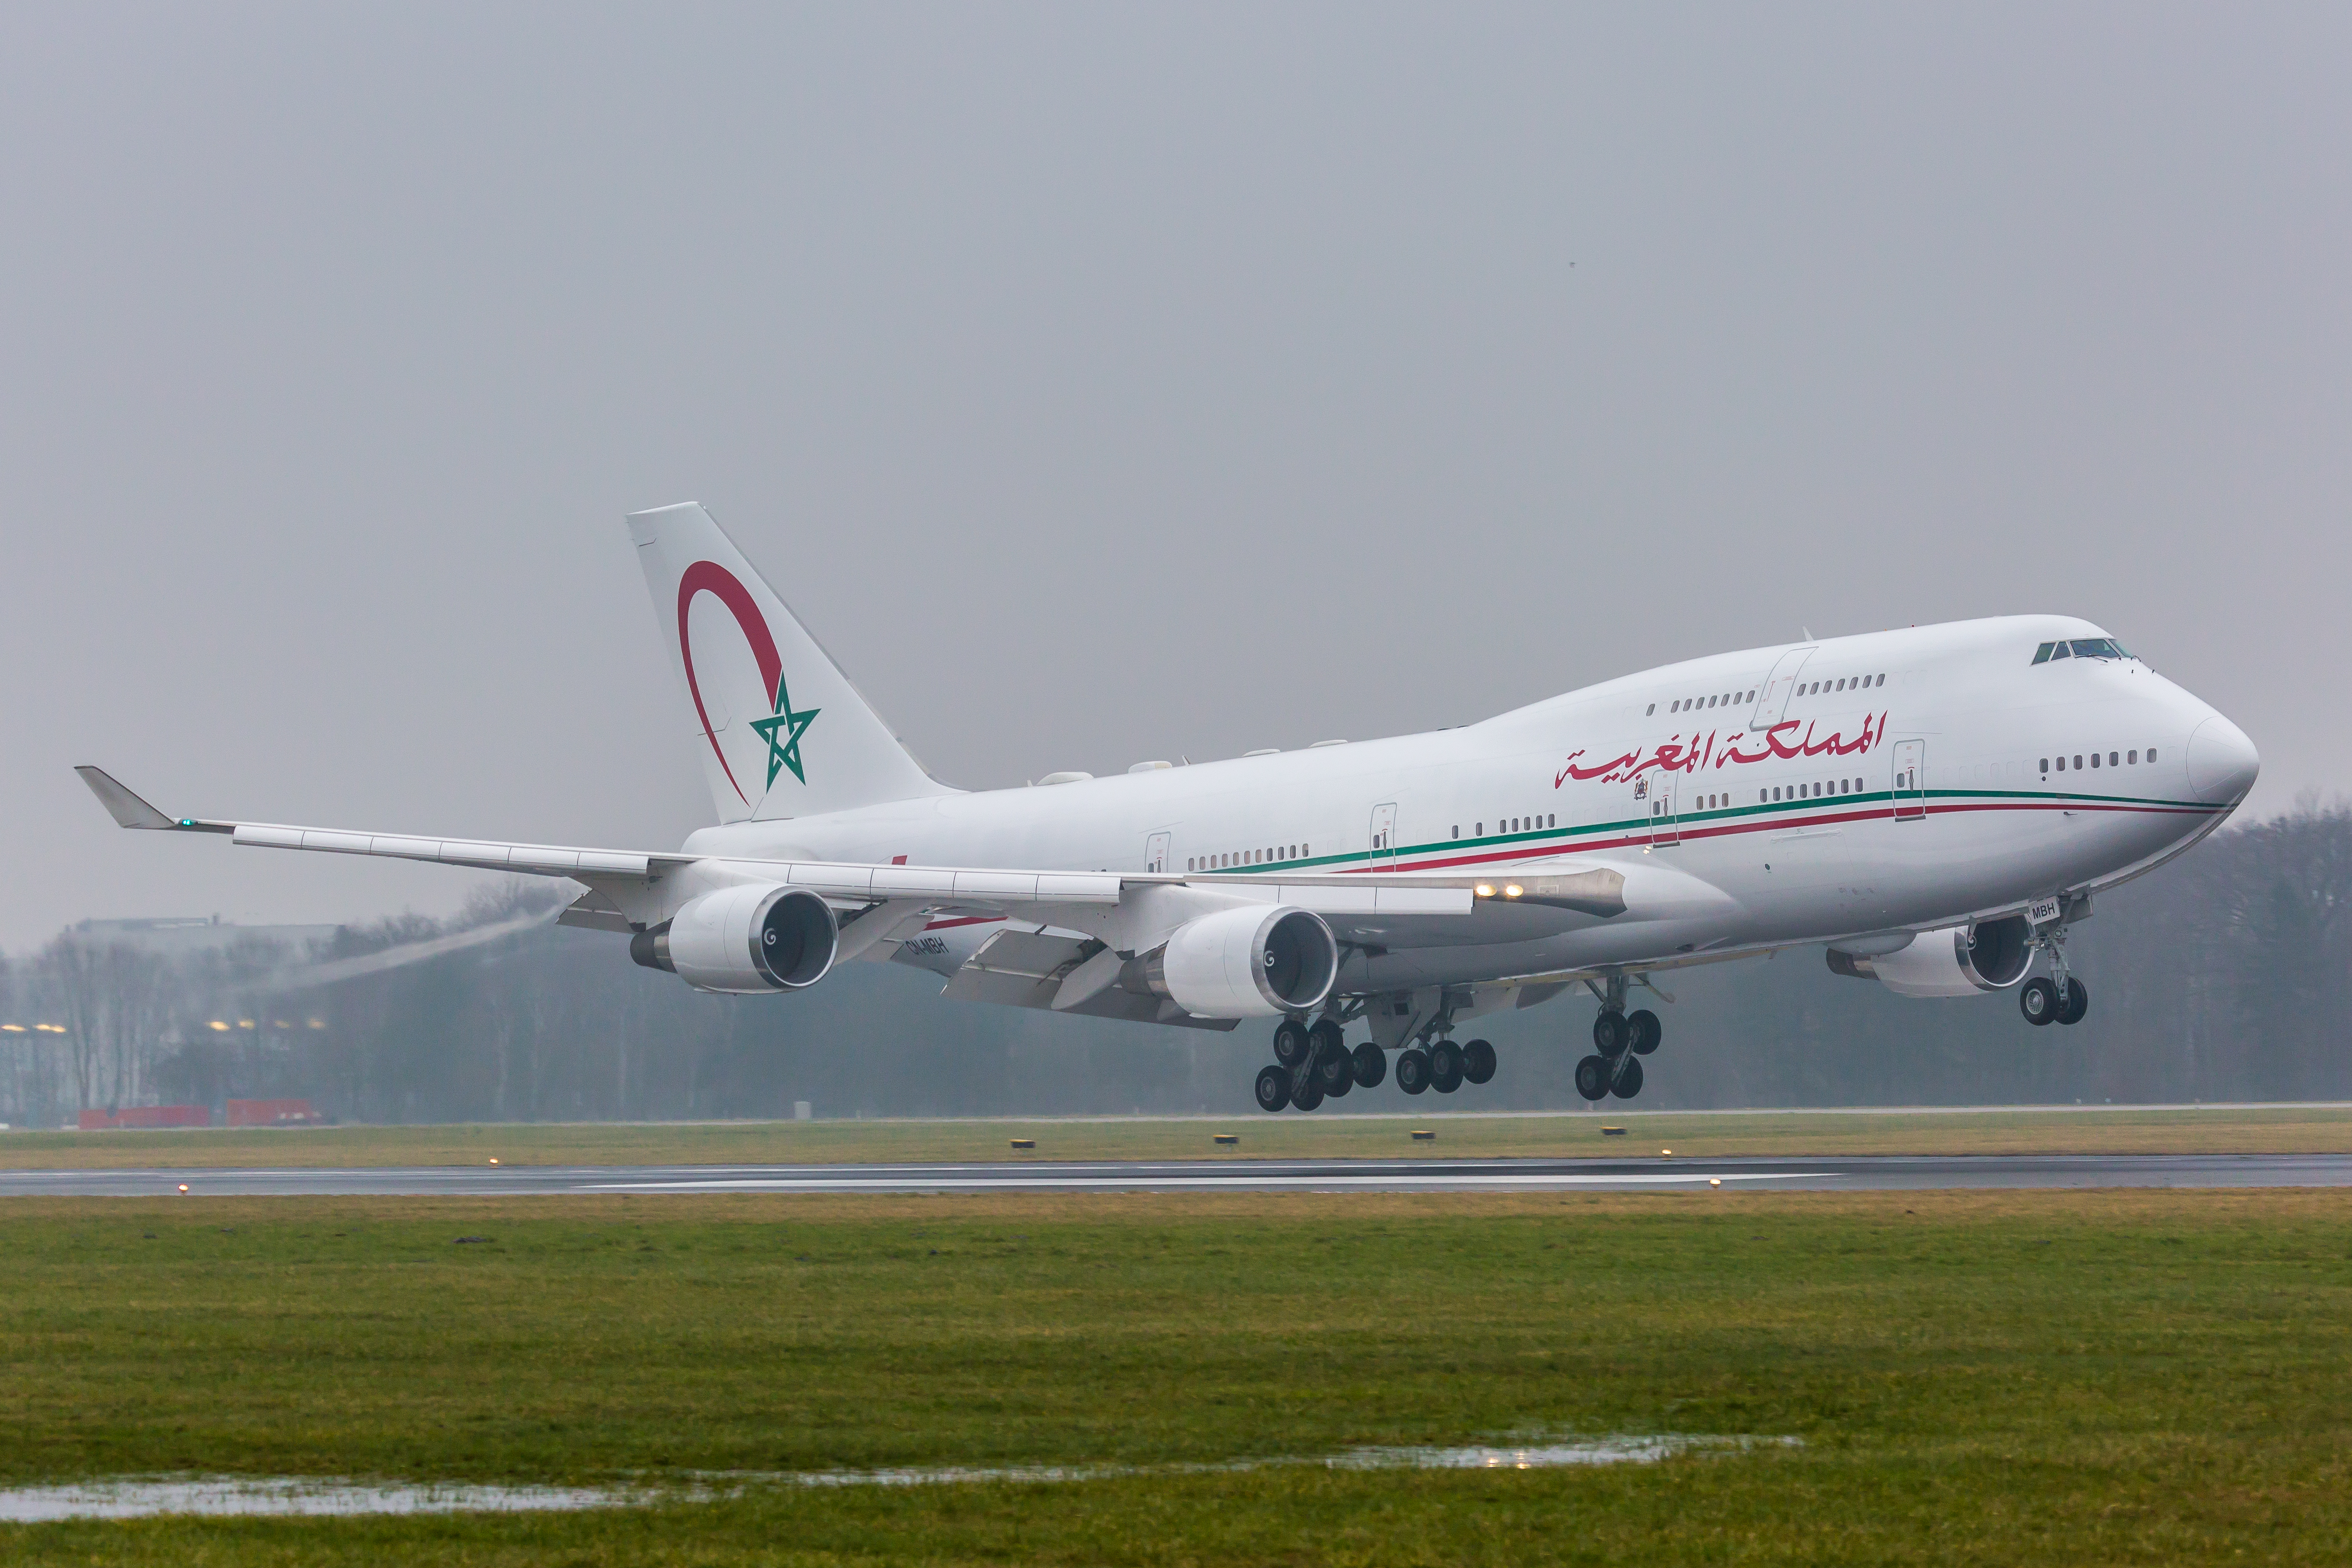 Air Force One marocain - Page 4 25040348921_d44bd09970_o